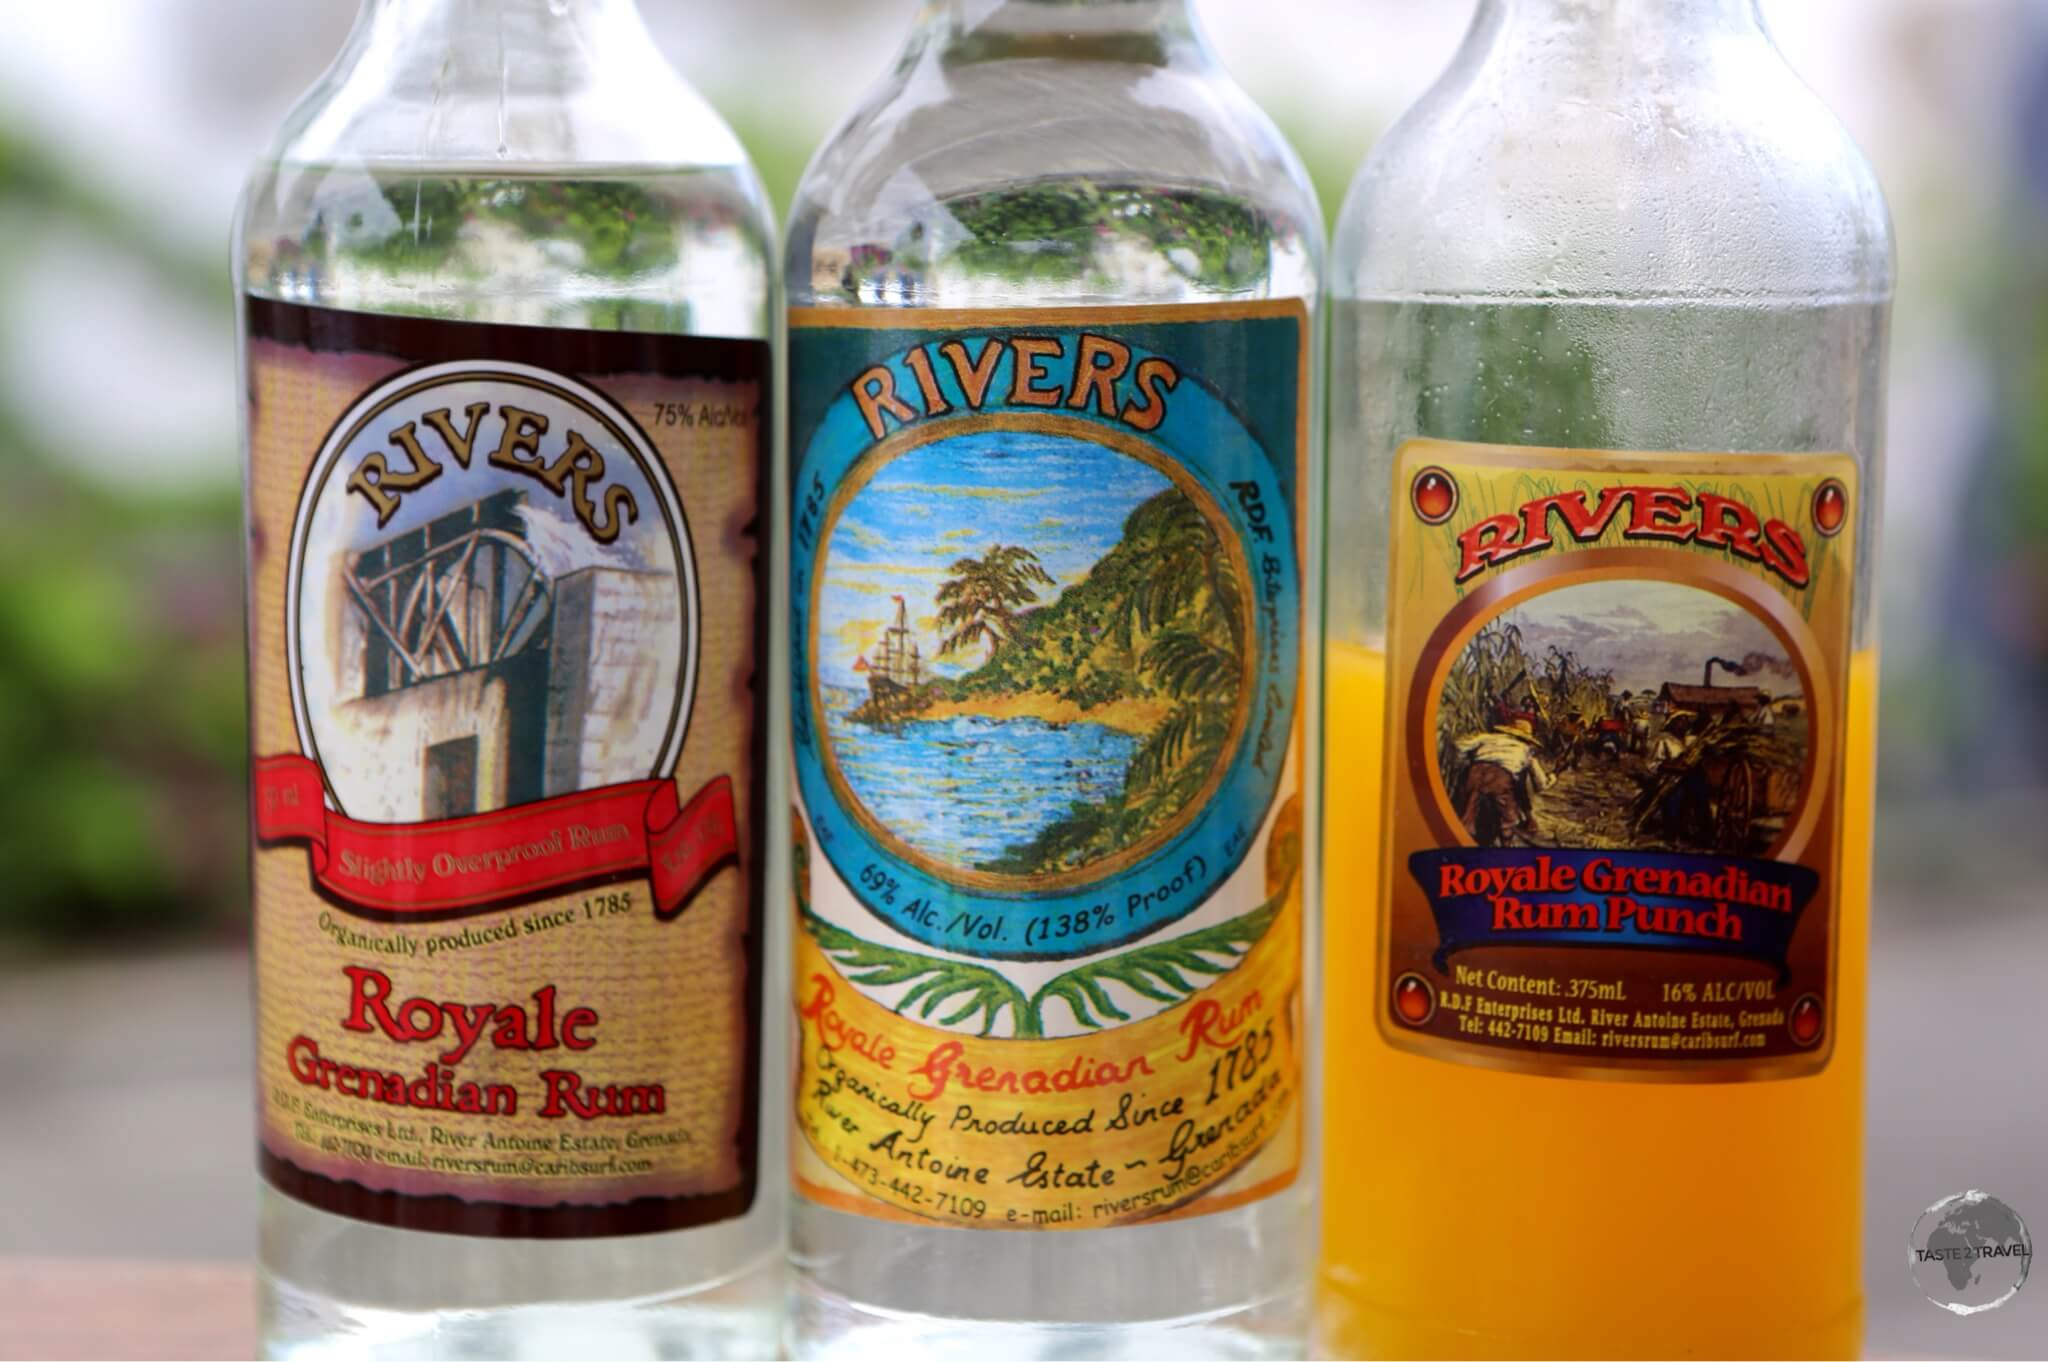 Products from the River Antoine rum distillery.